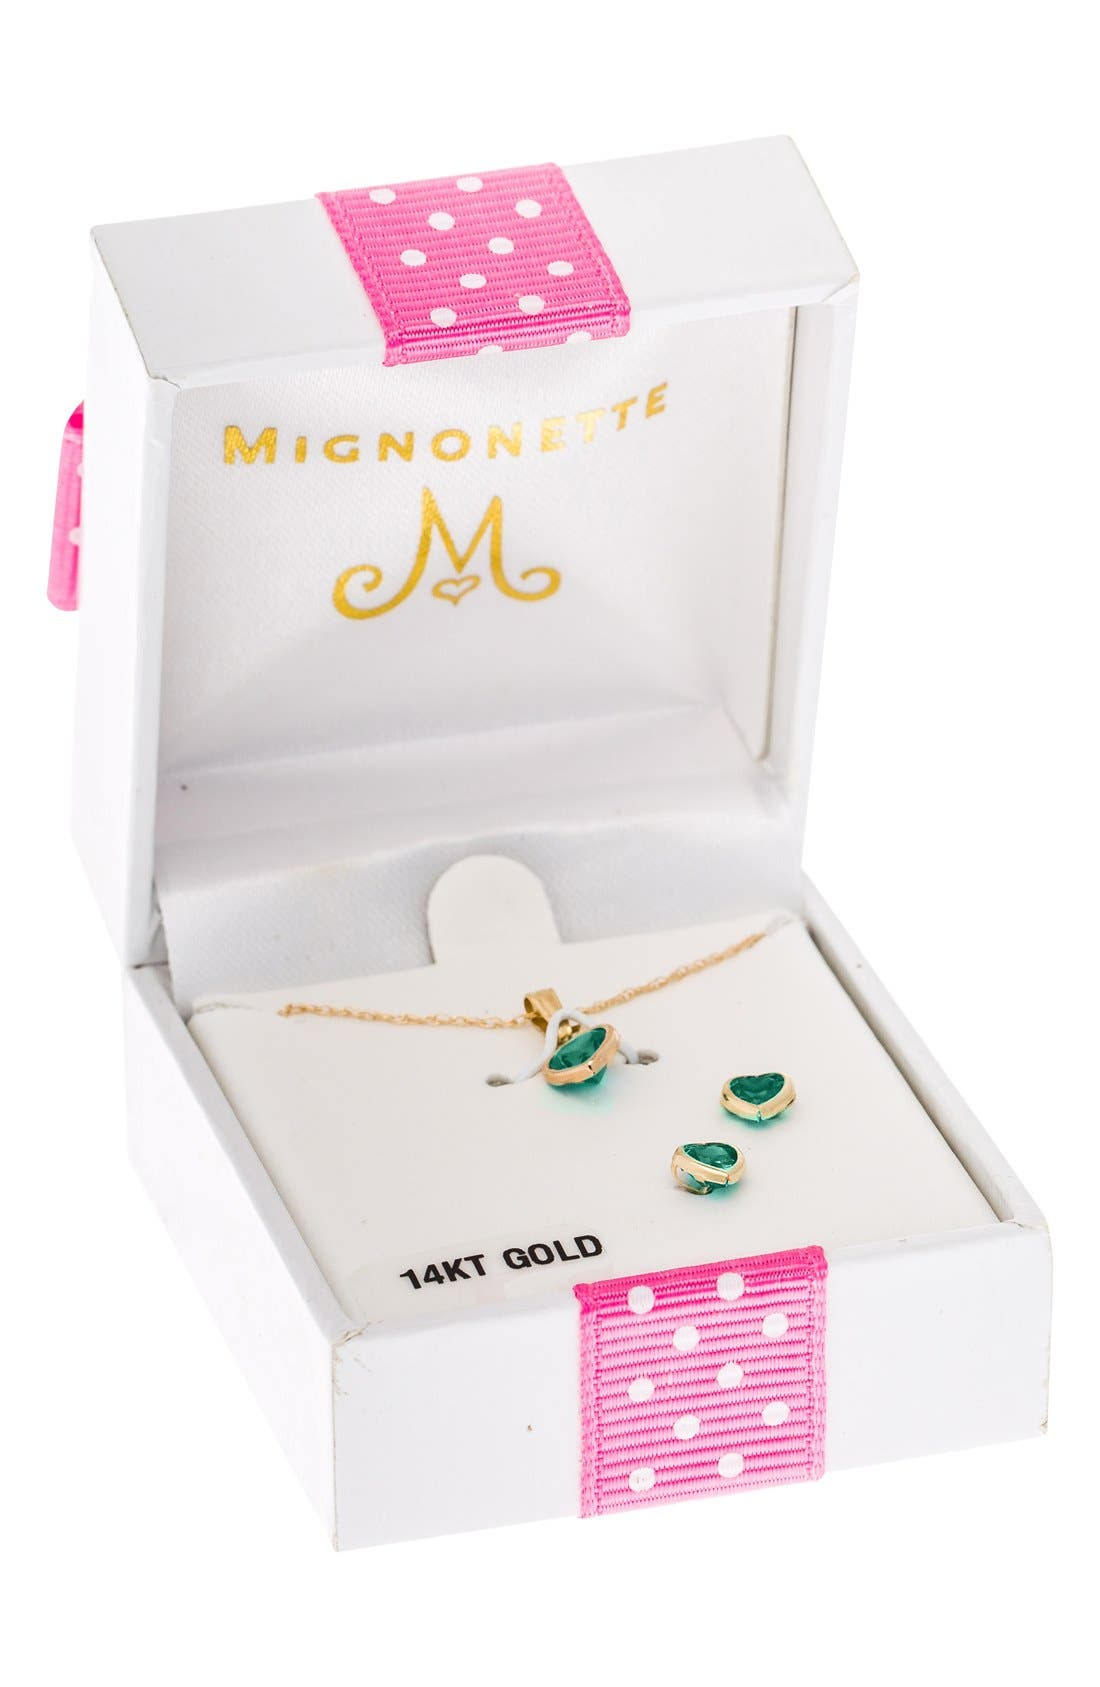 MIGNONETTE, 14k Gold Birthstone Necklace & Stud Earrings, Alternate thumbnail 3, color, MAY